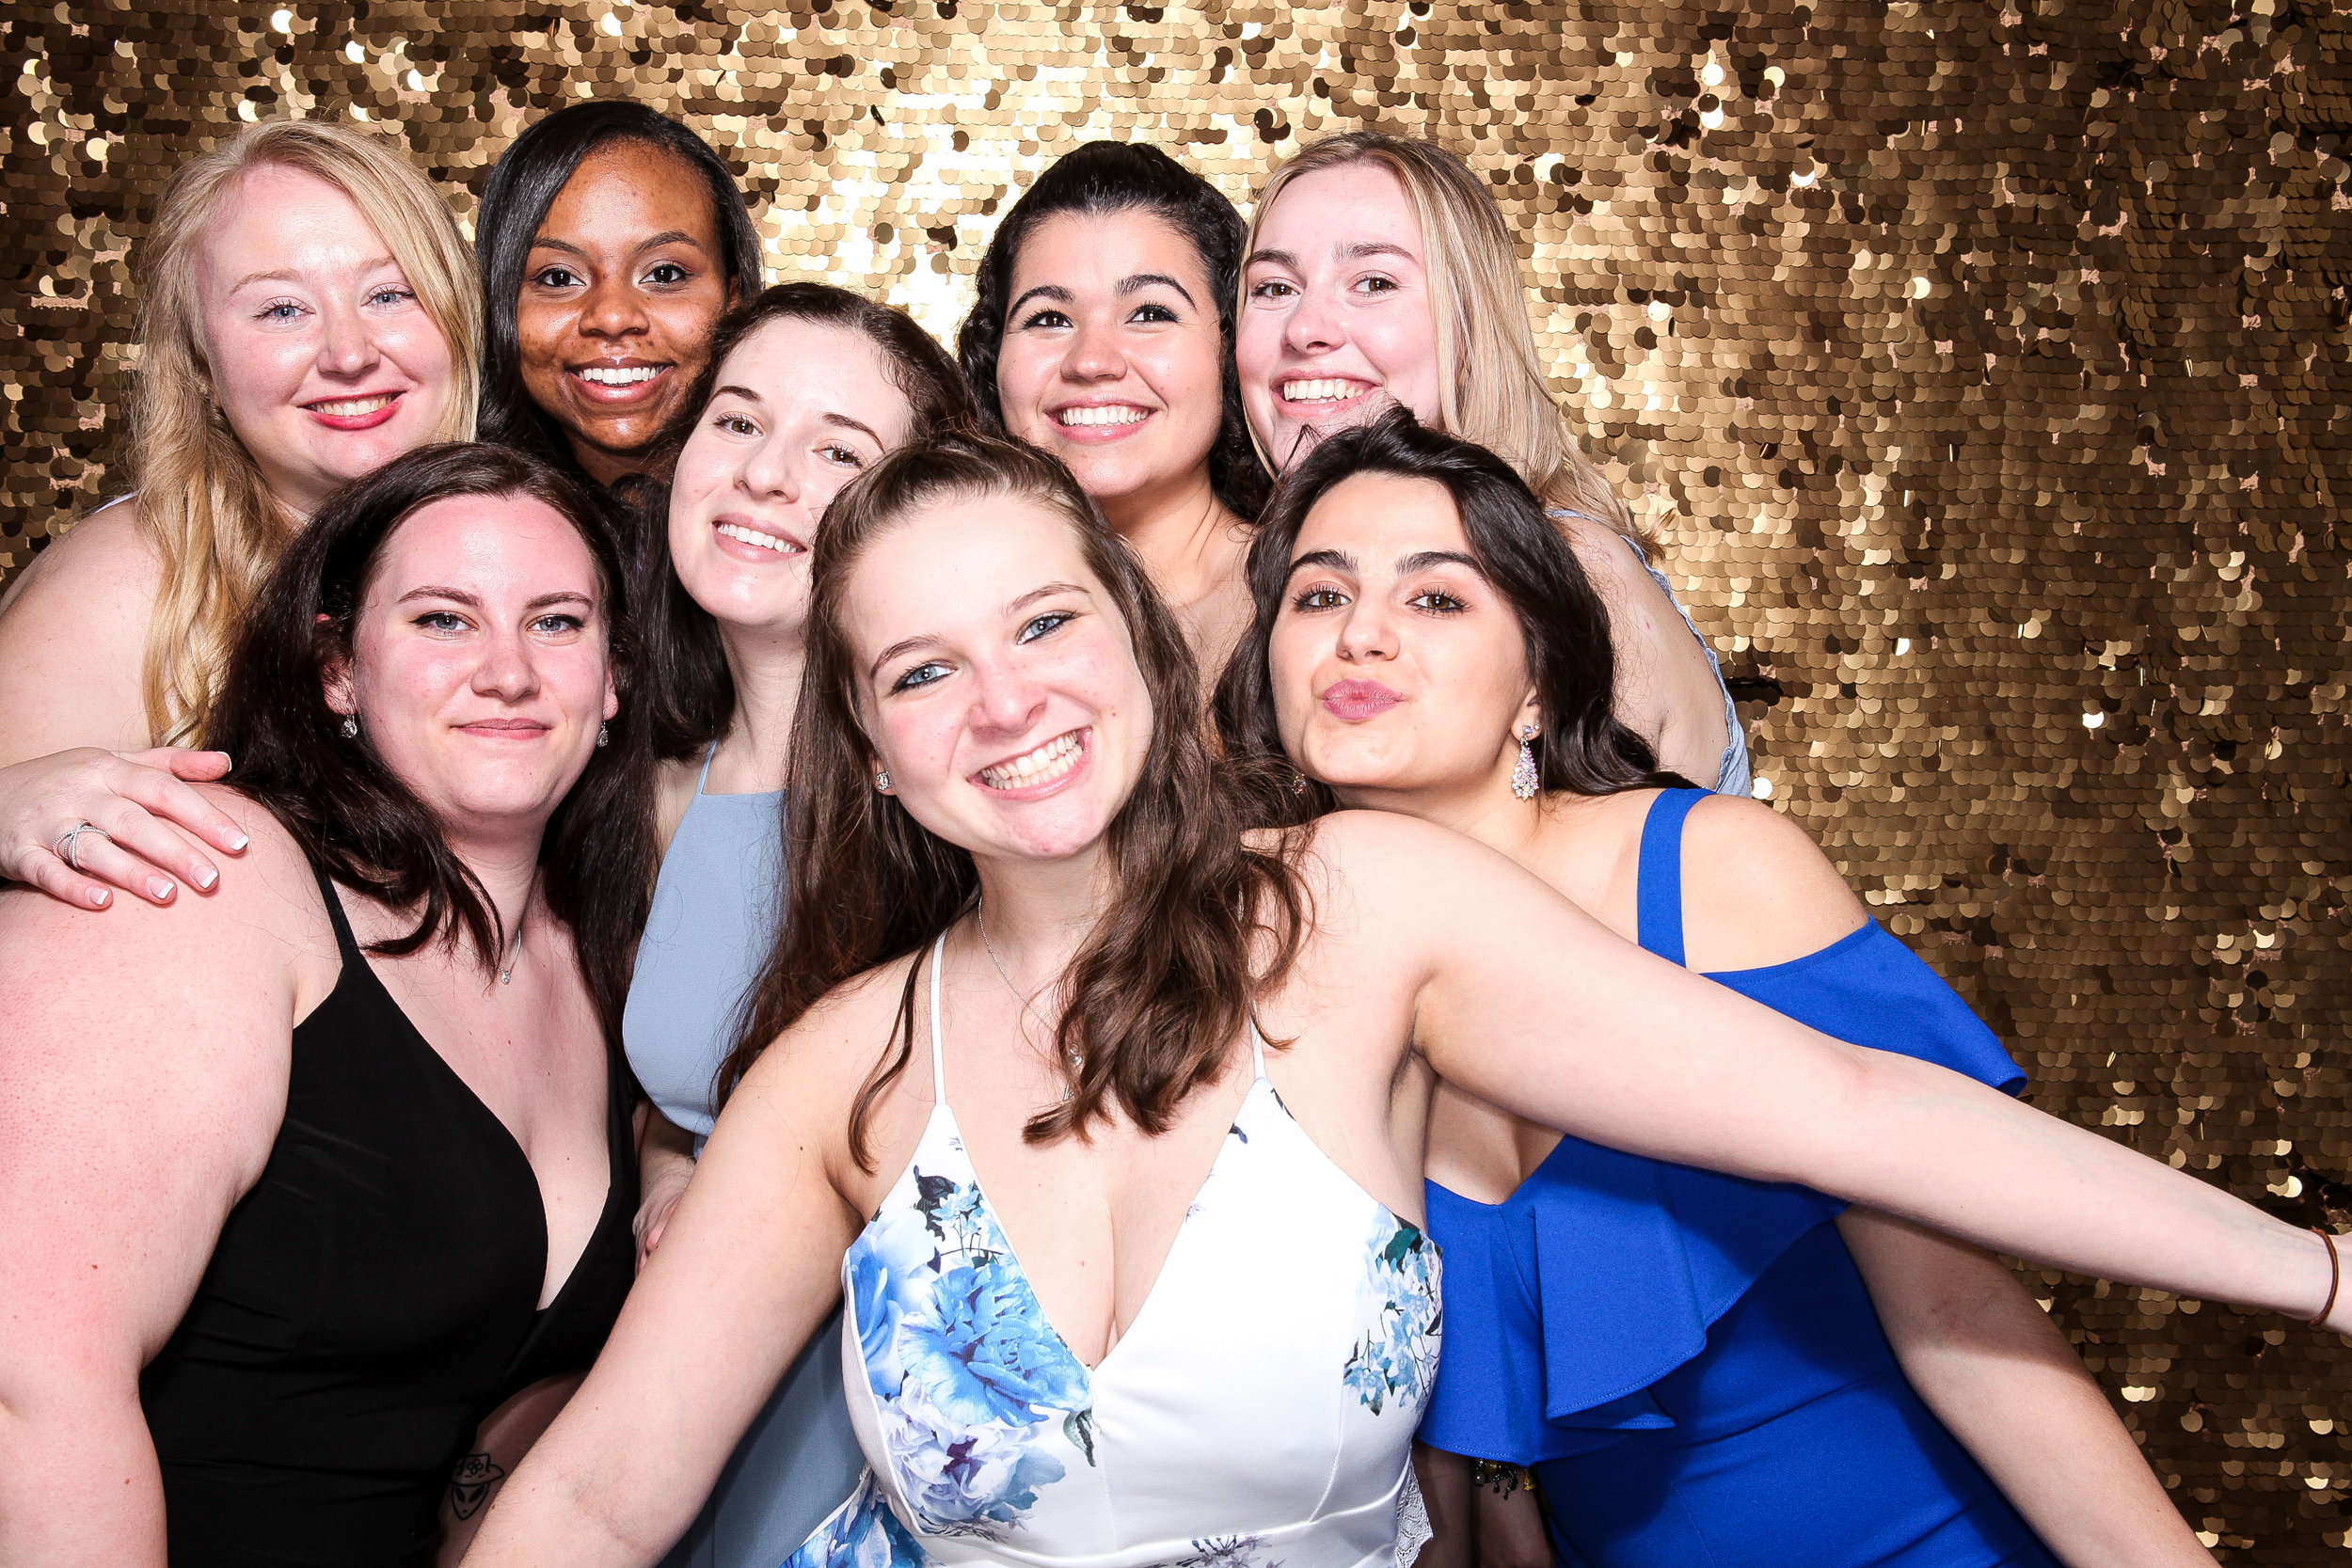 20190503_Adelphi_Senior_Formal-213.jpg